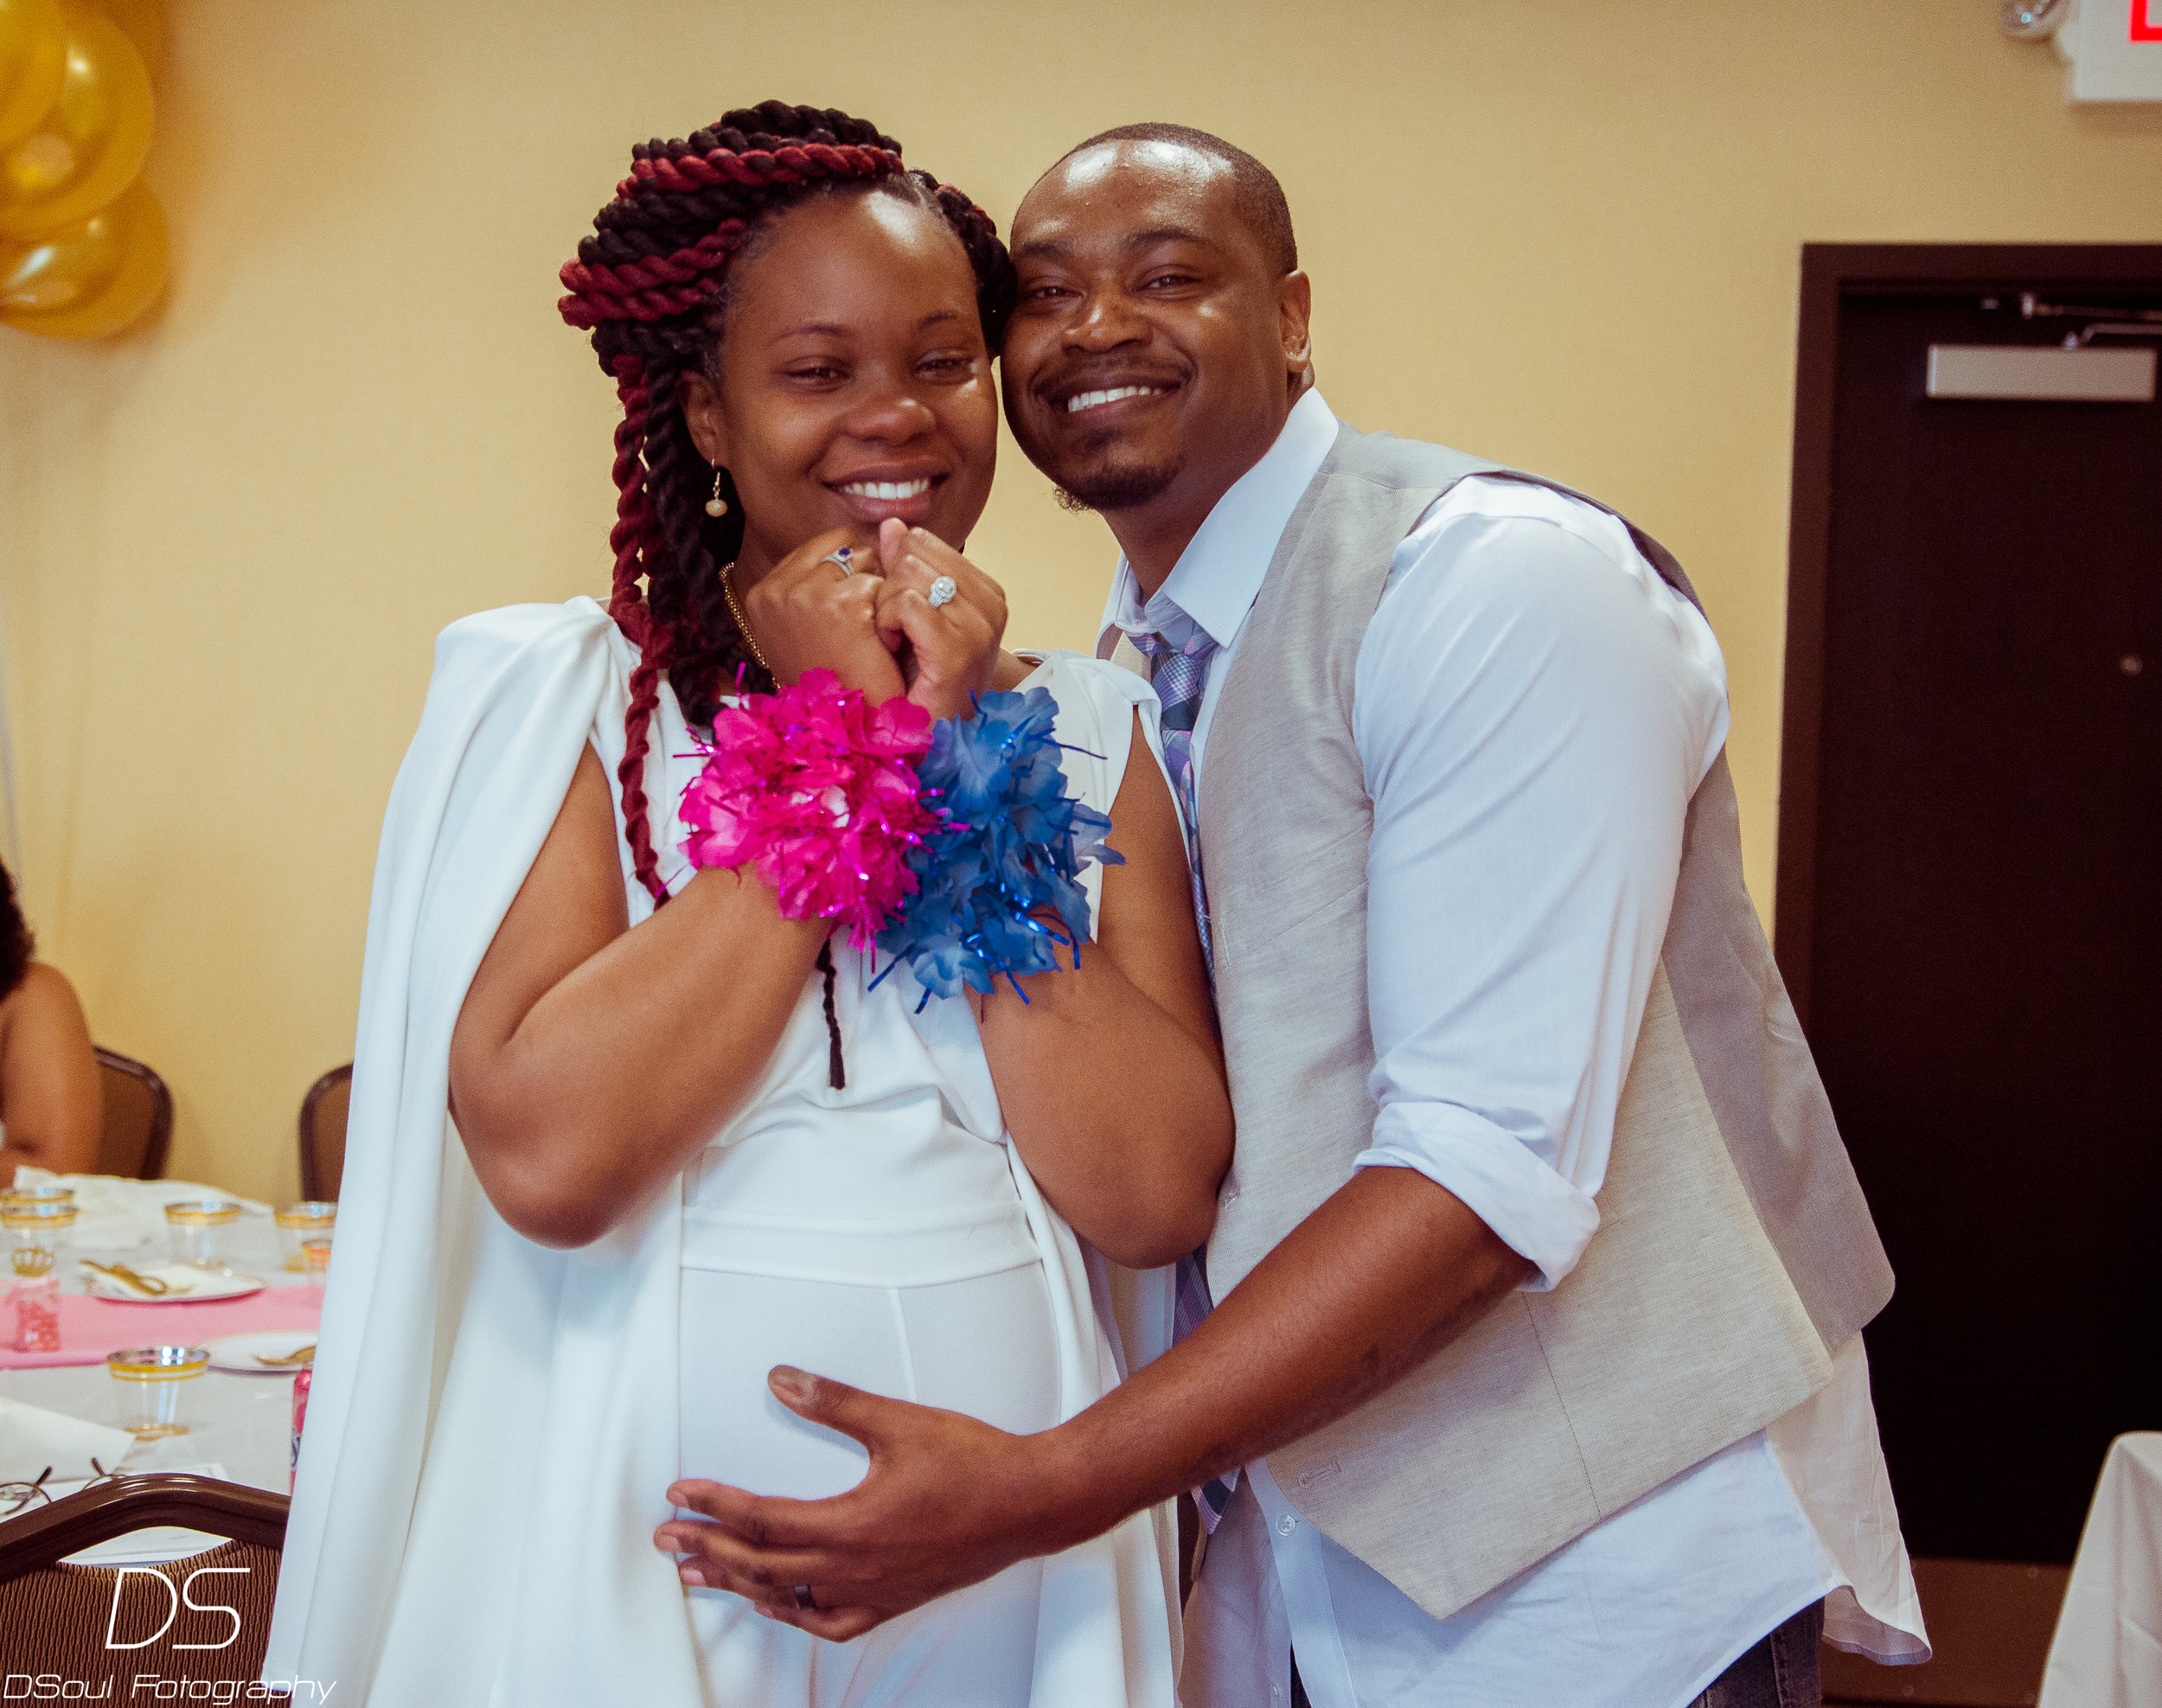 Mr. & Mrs. Grissett Baby Shower-959.jpg